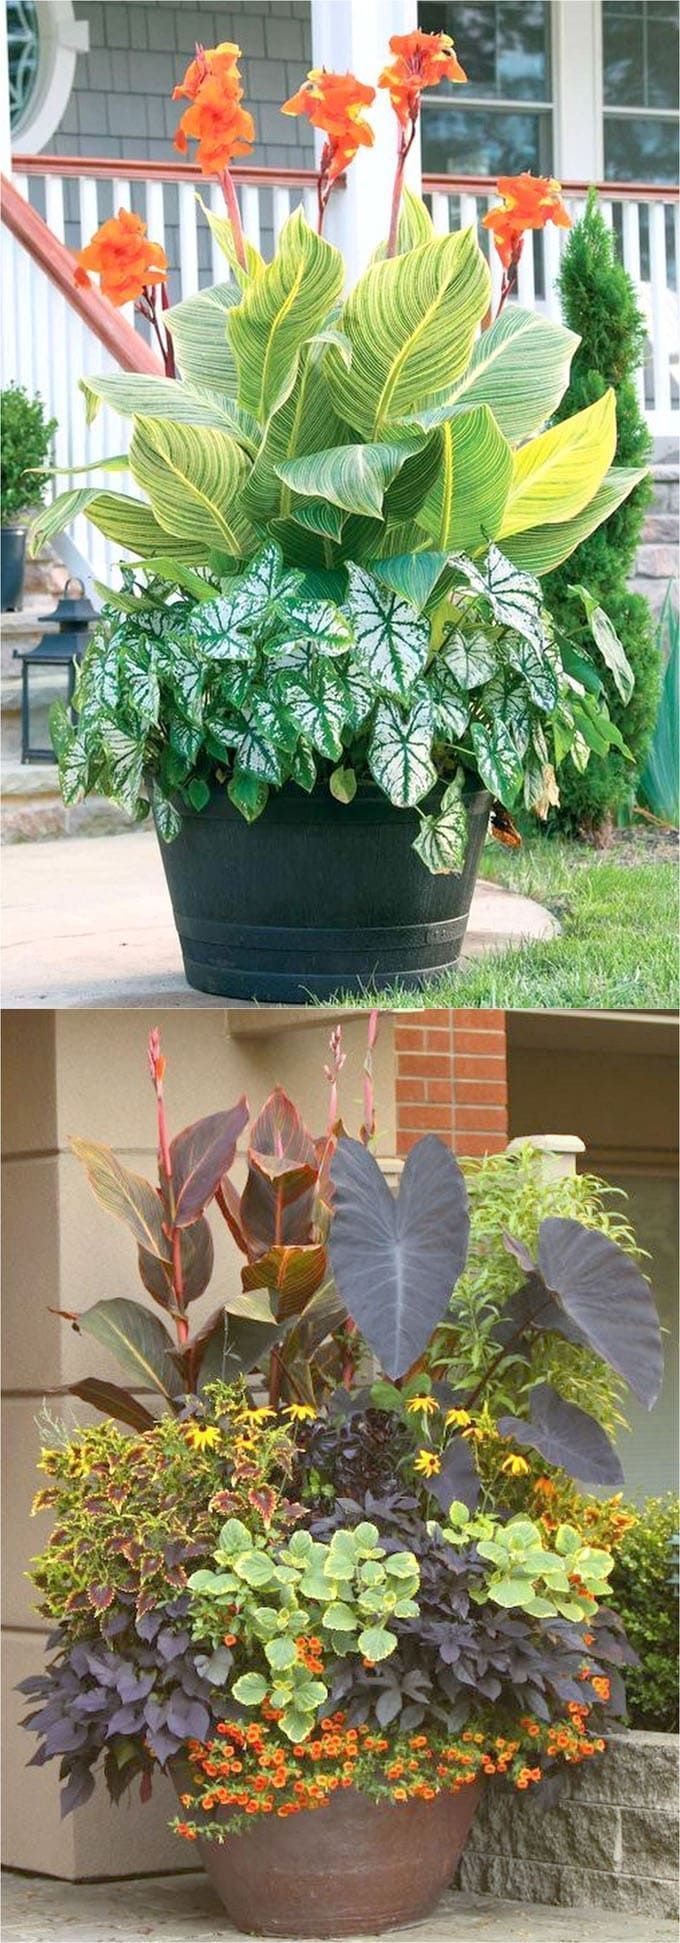 Colorful flower gardening in pots made easy with 38 best designer plant list for each container and sun vs shade locations. Grow a beautiful flower garden with these proven combinations and success tips! - A Piece of Rainbow #Containergardening